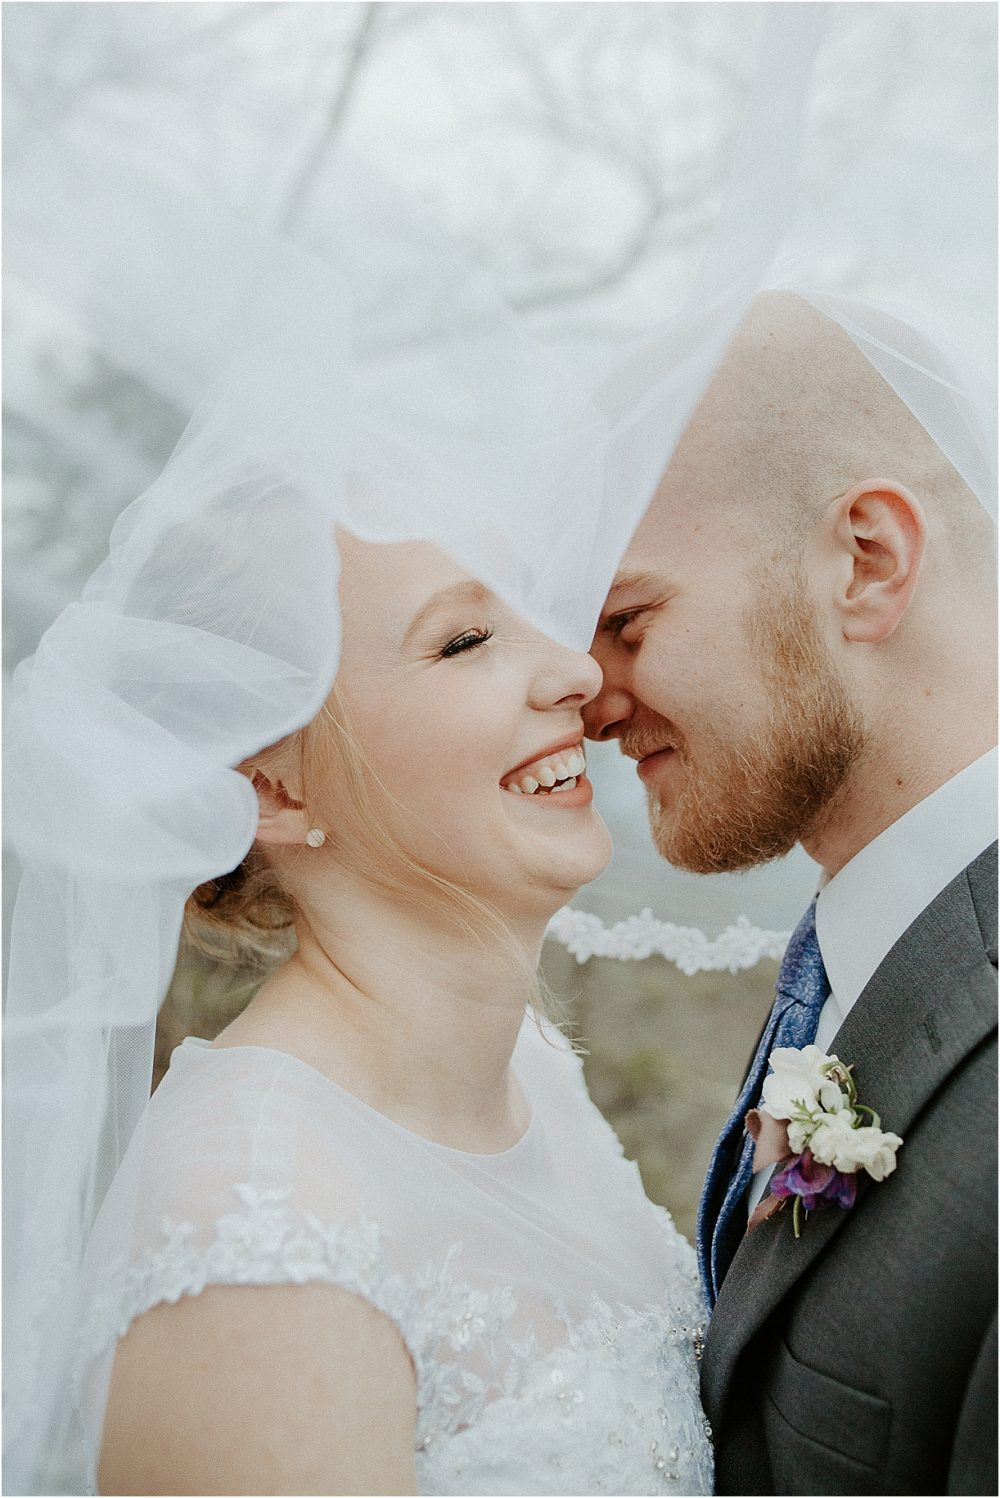 Small Intimate Wedding During Coronavirus What to Do COVID 19 | Hill City Bride Virginia Weddings